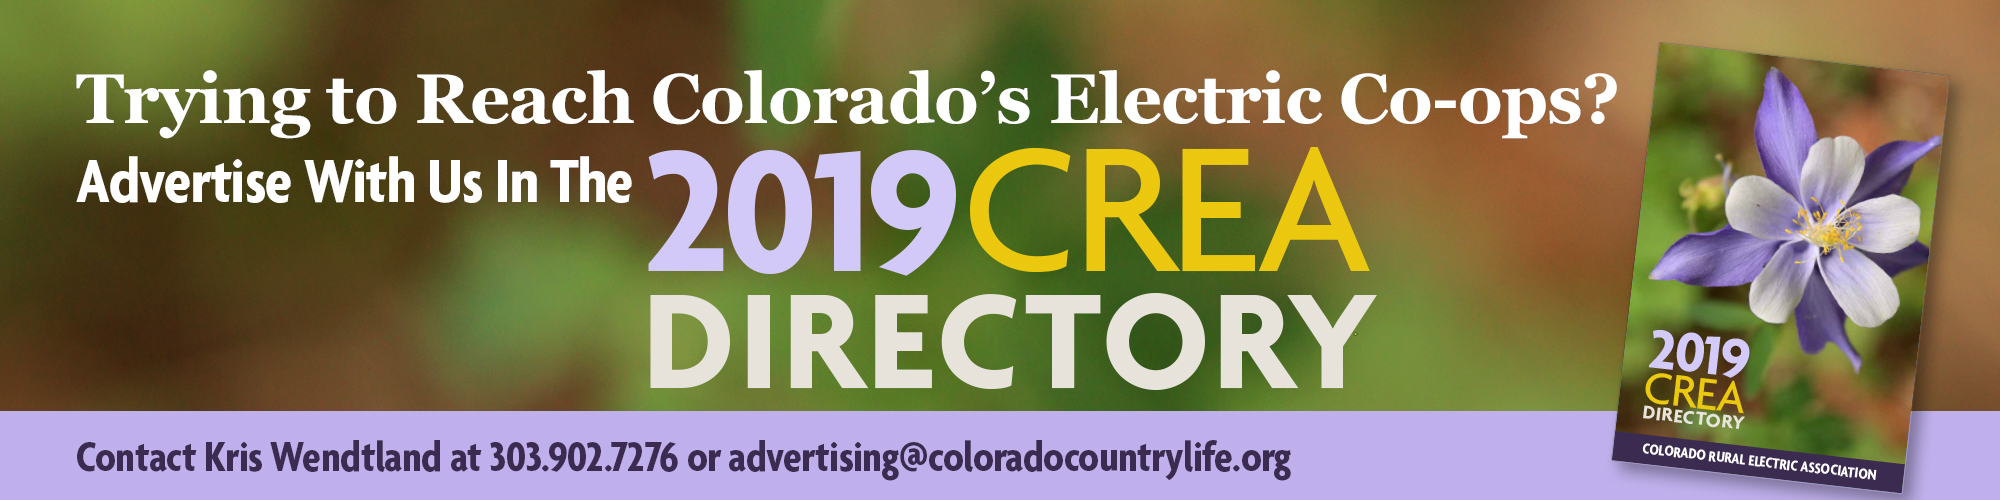 Advertise2019Directory